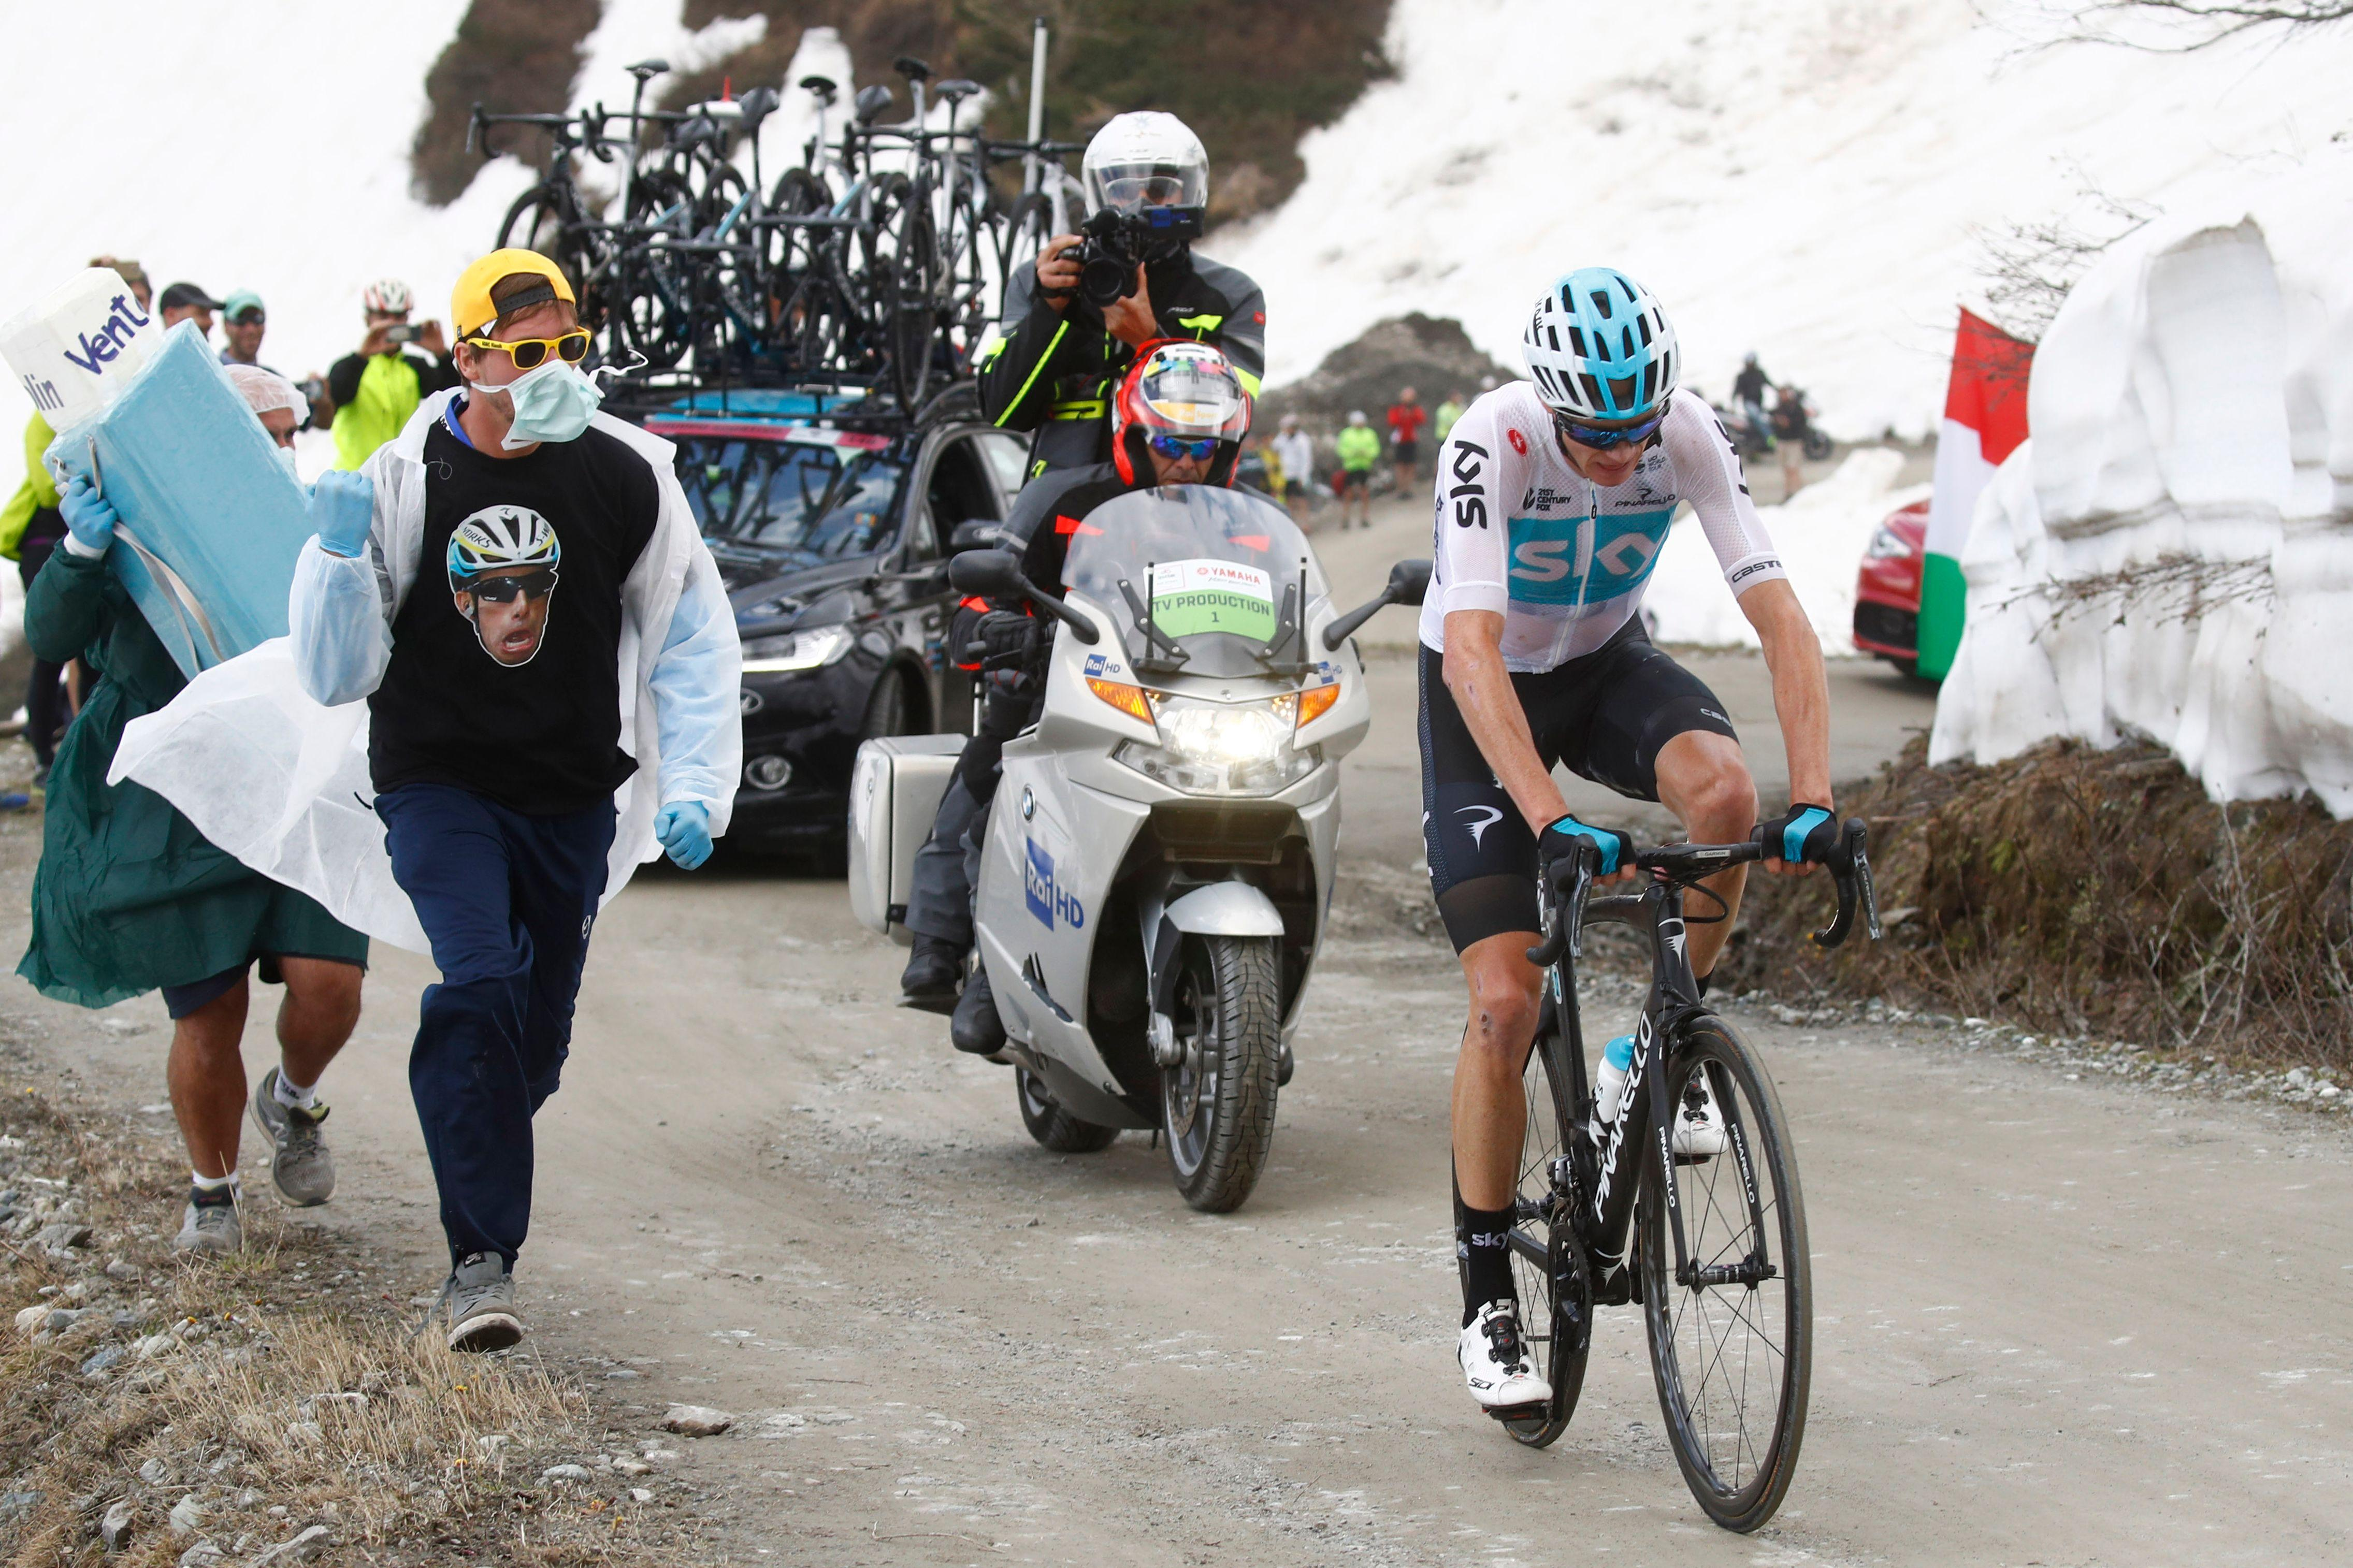 The hilarious spectacle occurred during the Giro d'Italia